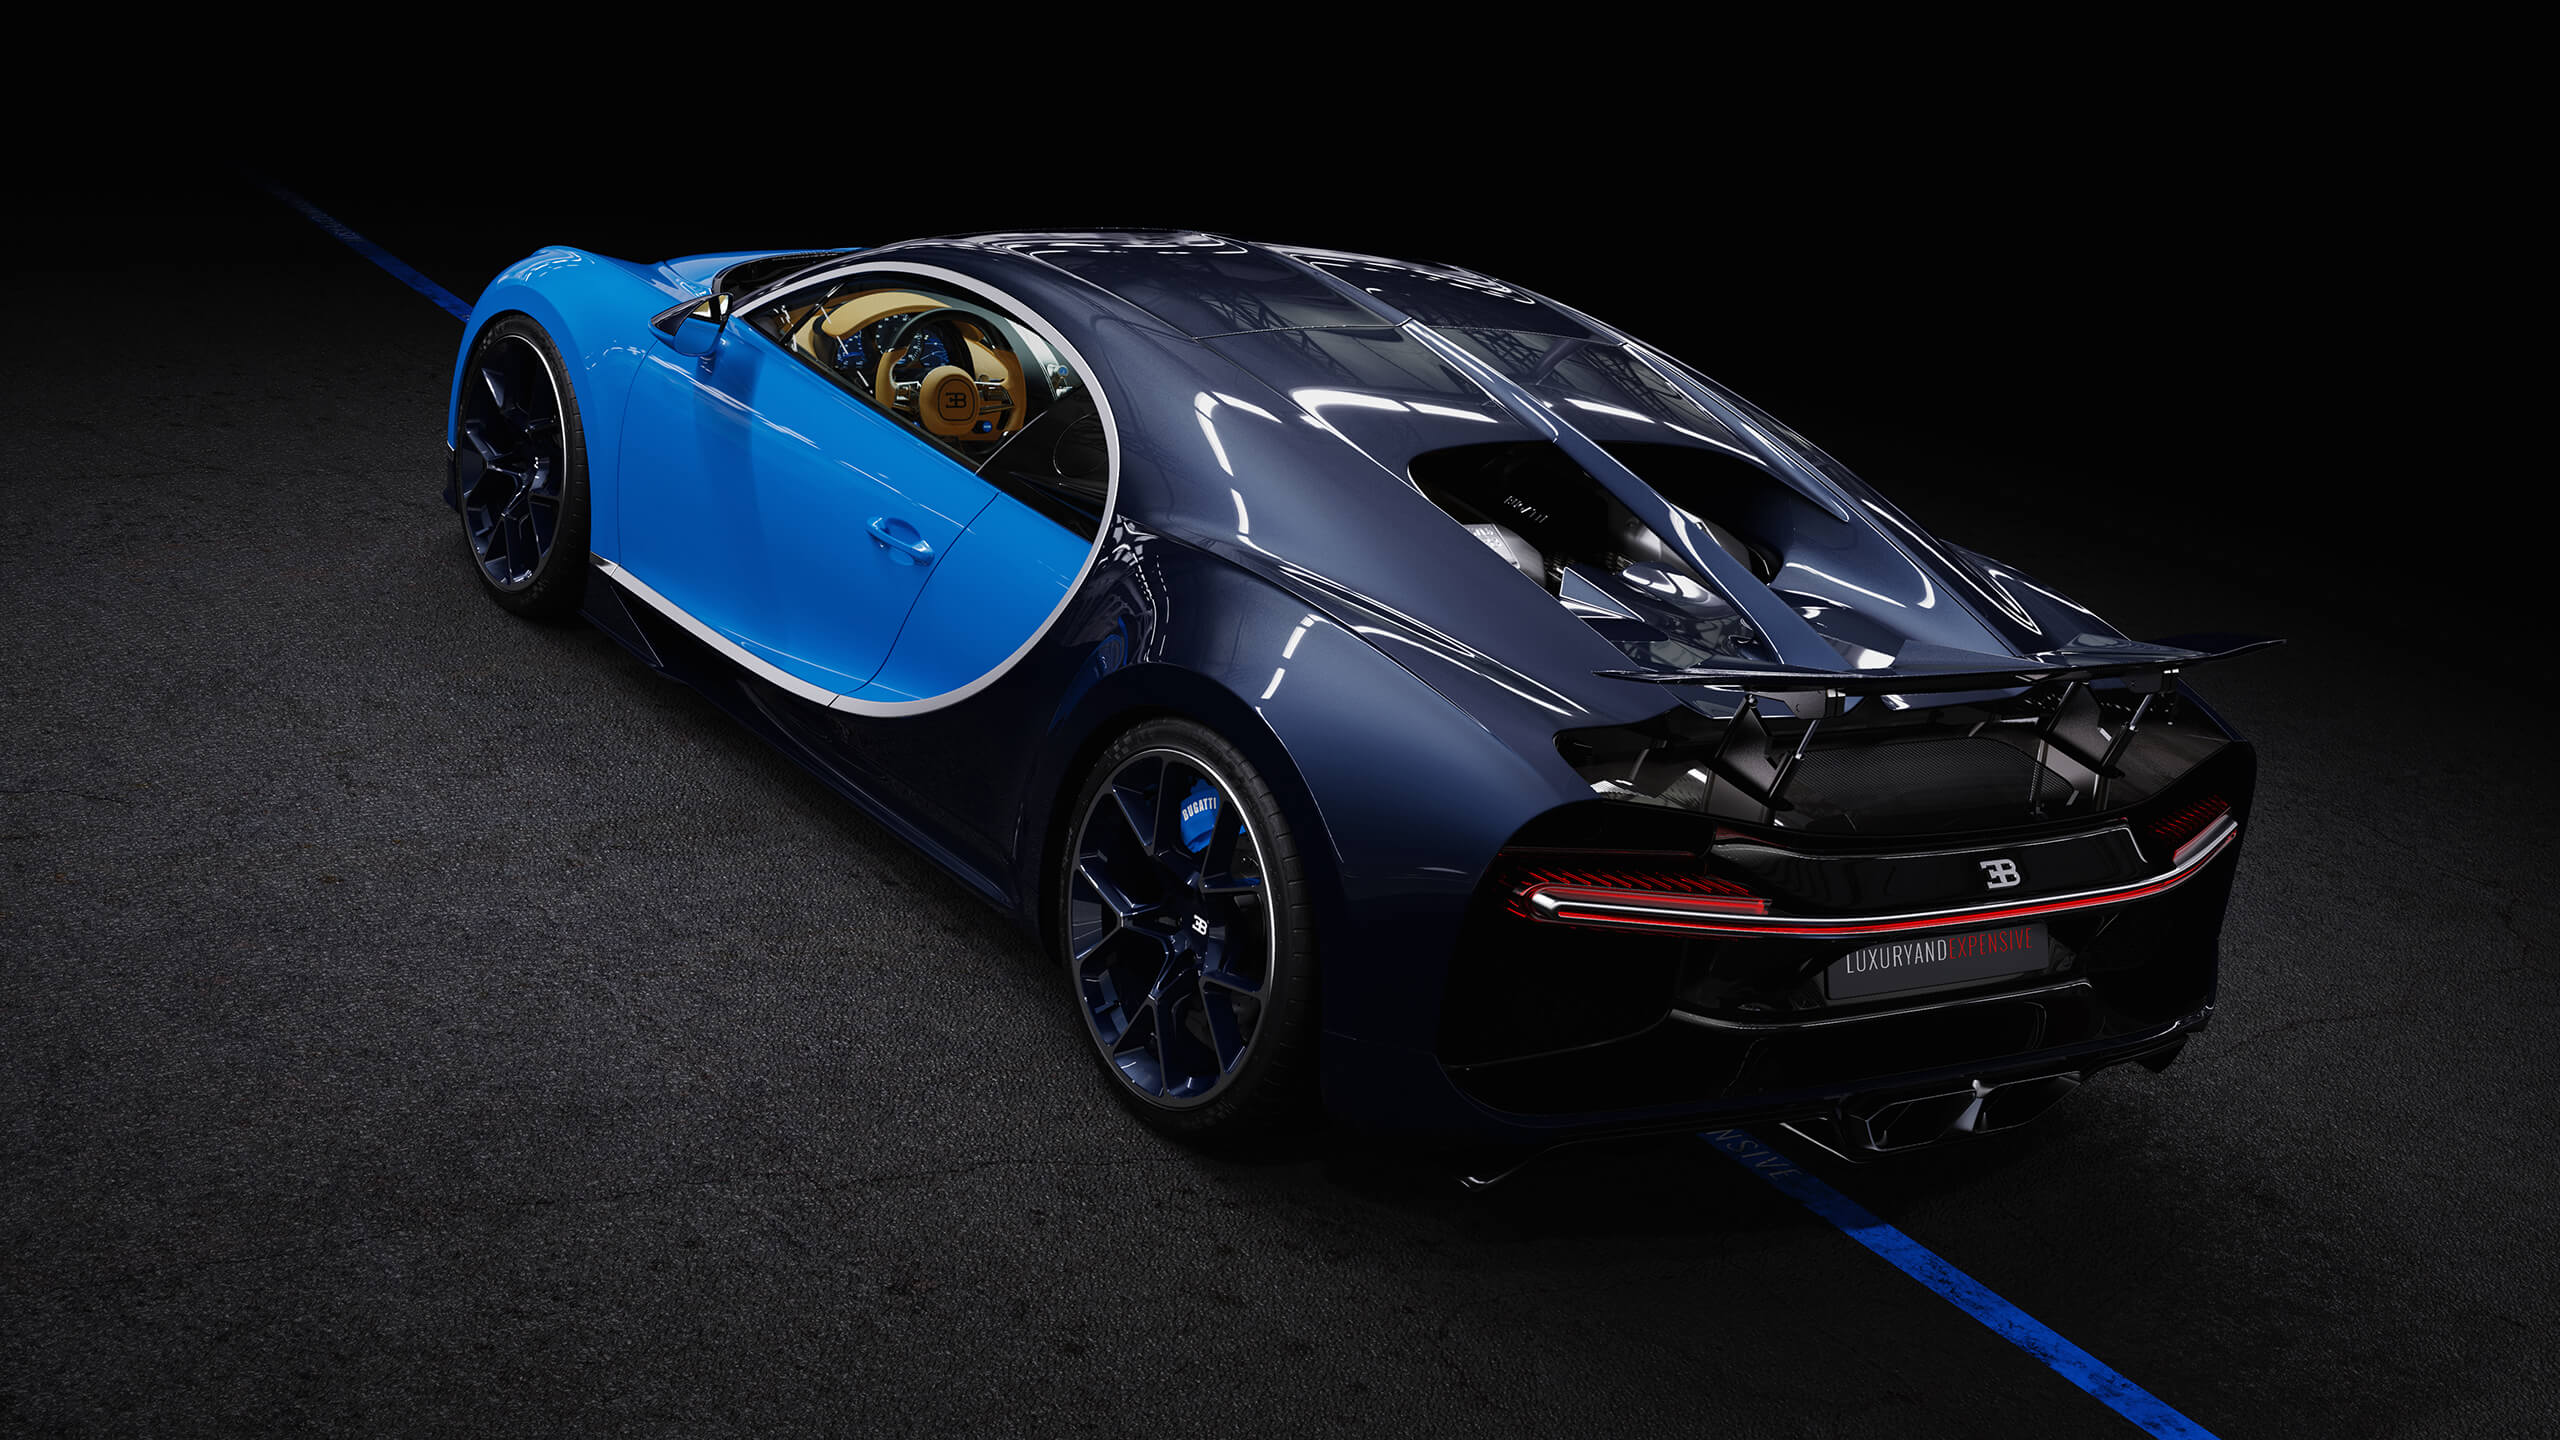 Bugatti Chiron (Blue), 2016/04 now for € 3,241,073 - buy @ LUXCARS.ONE